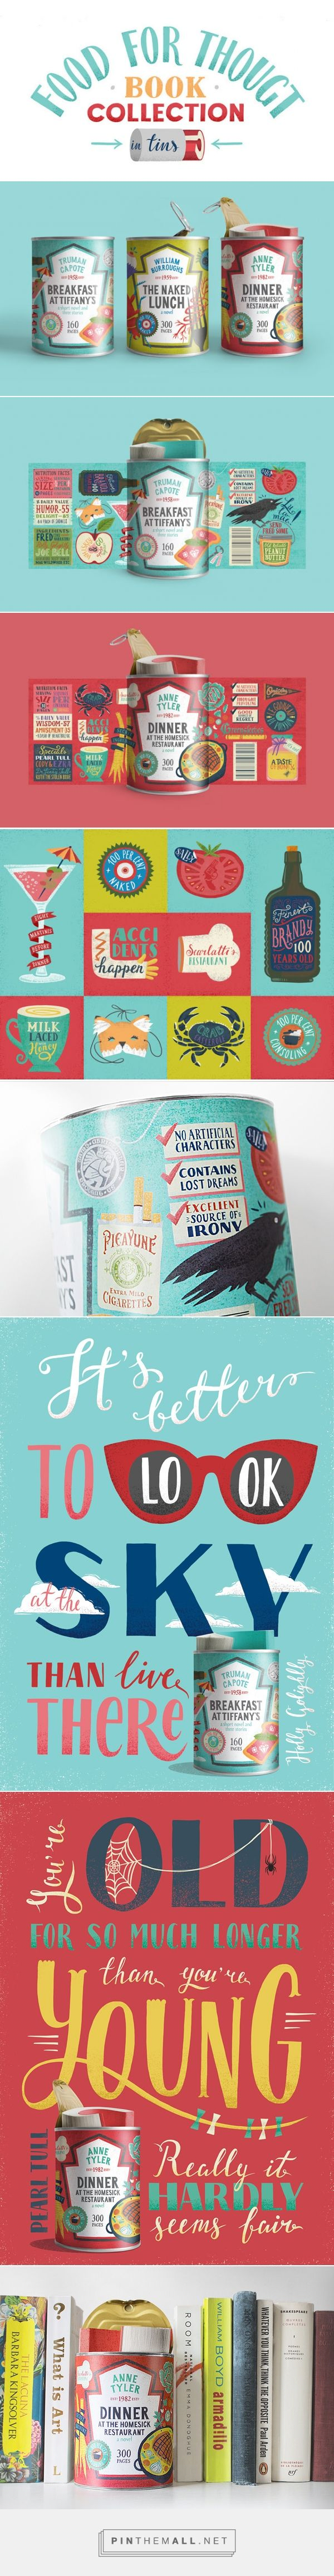 Food for Thought #Books #Concept #packaging designed by Maria Mordvintseva-Keeler - http://www.packagingoftheworld.com/2015/03/food-for-thought-books-concept.html